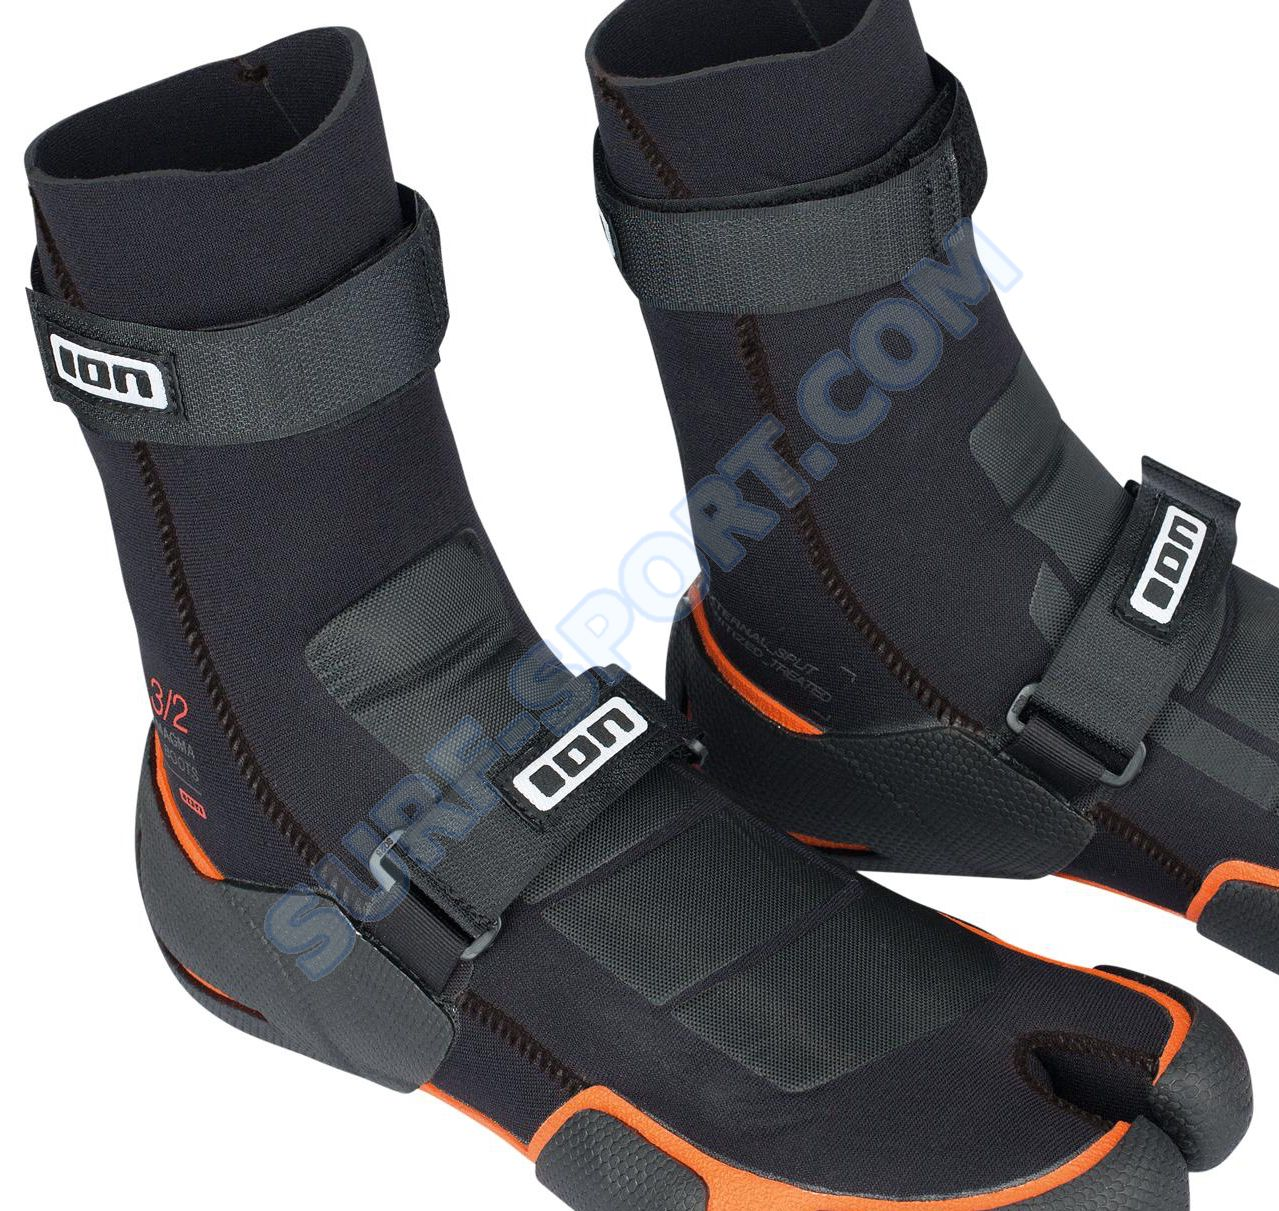 Ion_MagmaBoots-3:2_SurfSport_2016.jpg